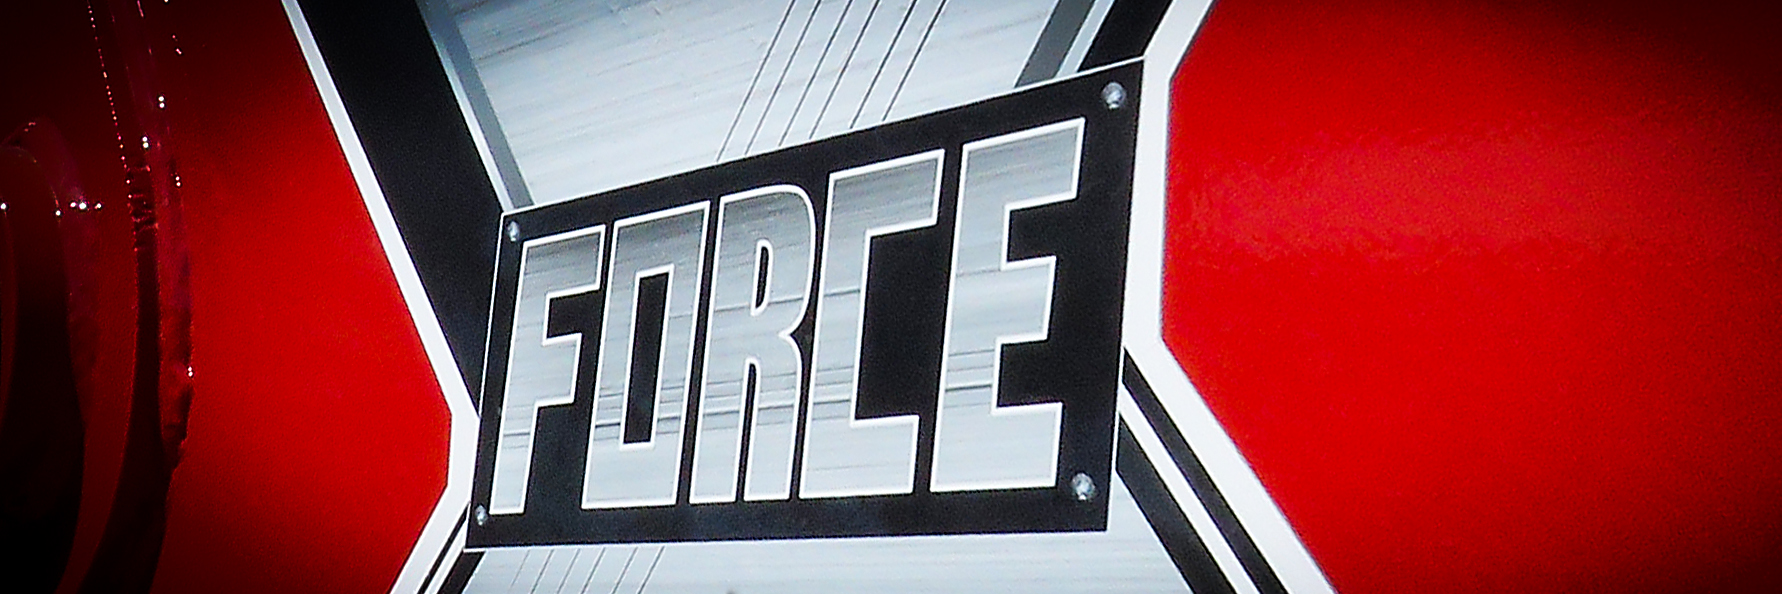 x.force.header.jpg